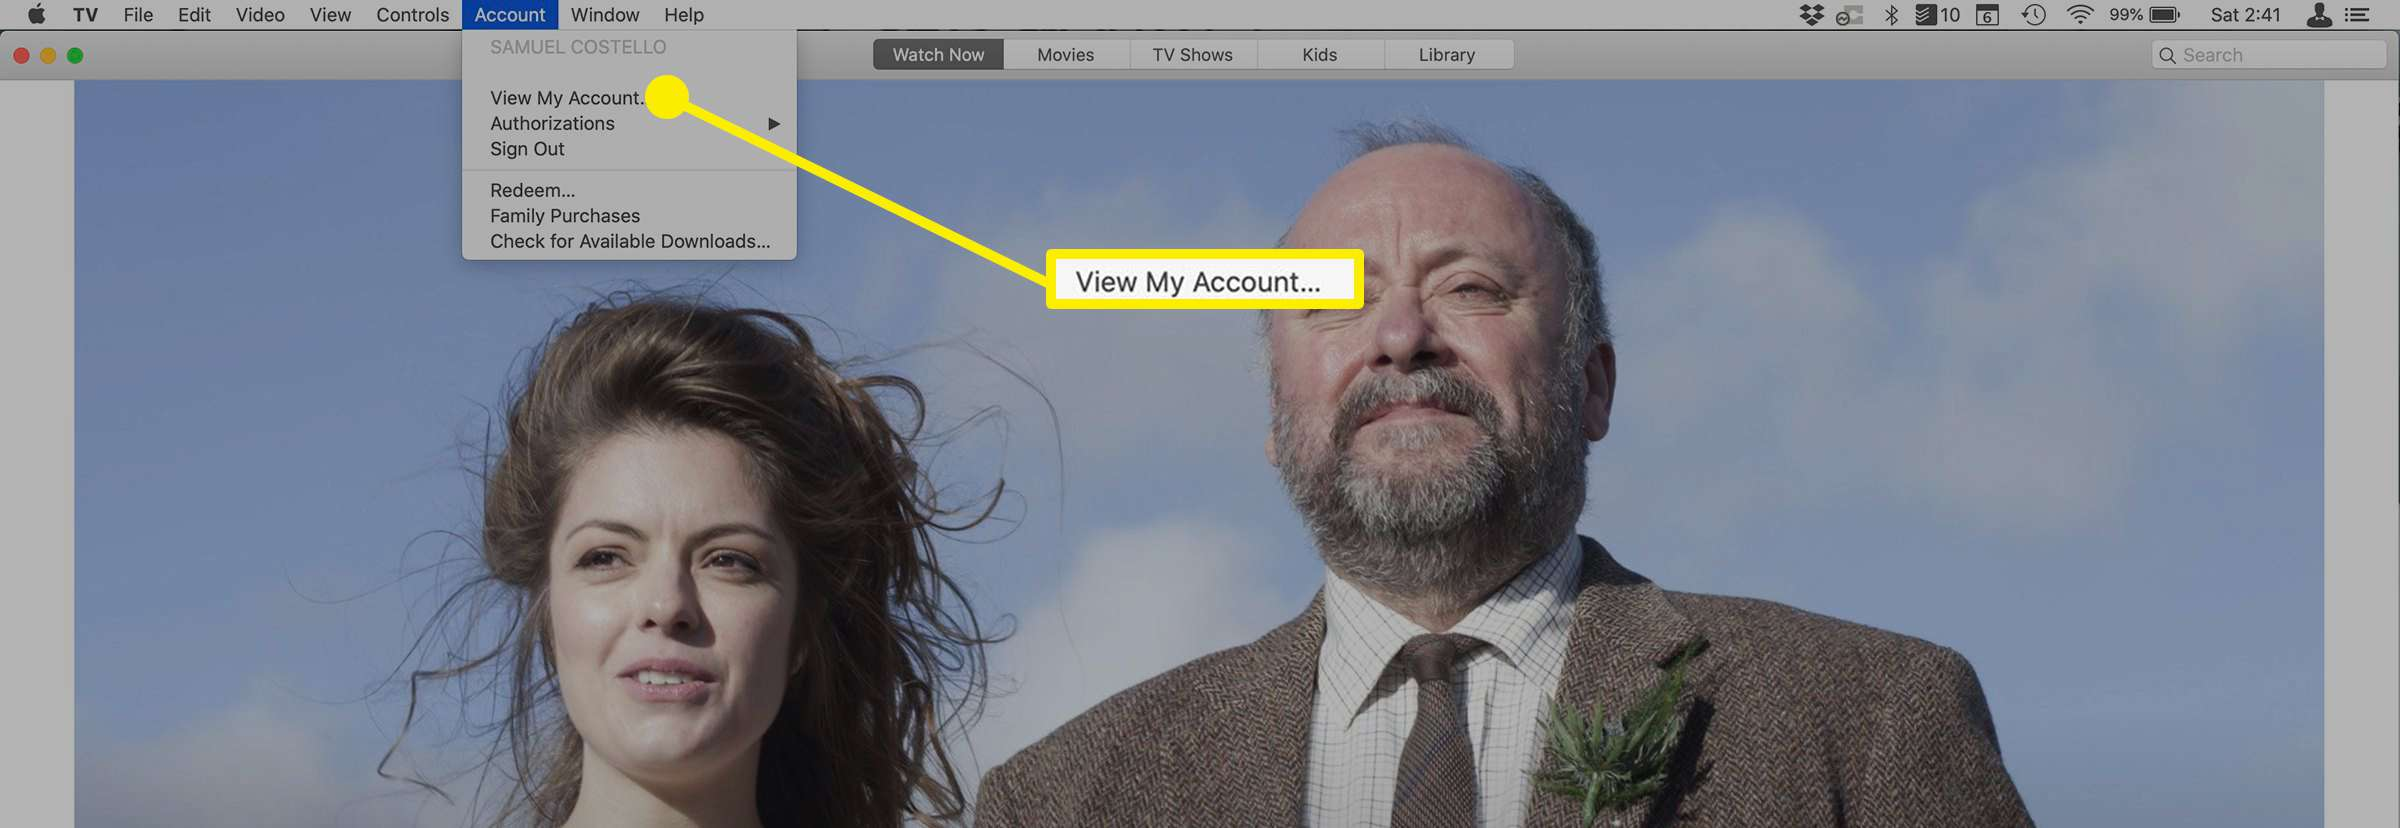 The View My Account option on Apple TV Plus on Mac.